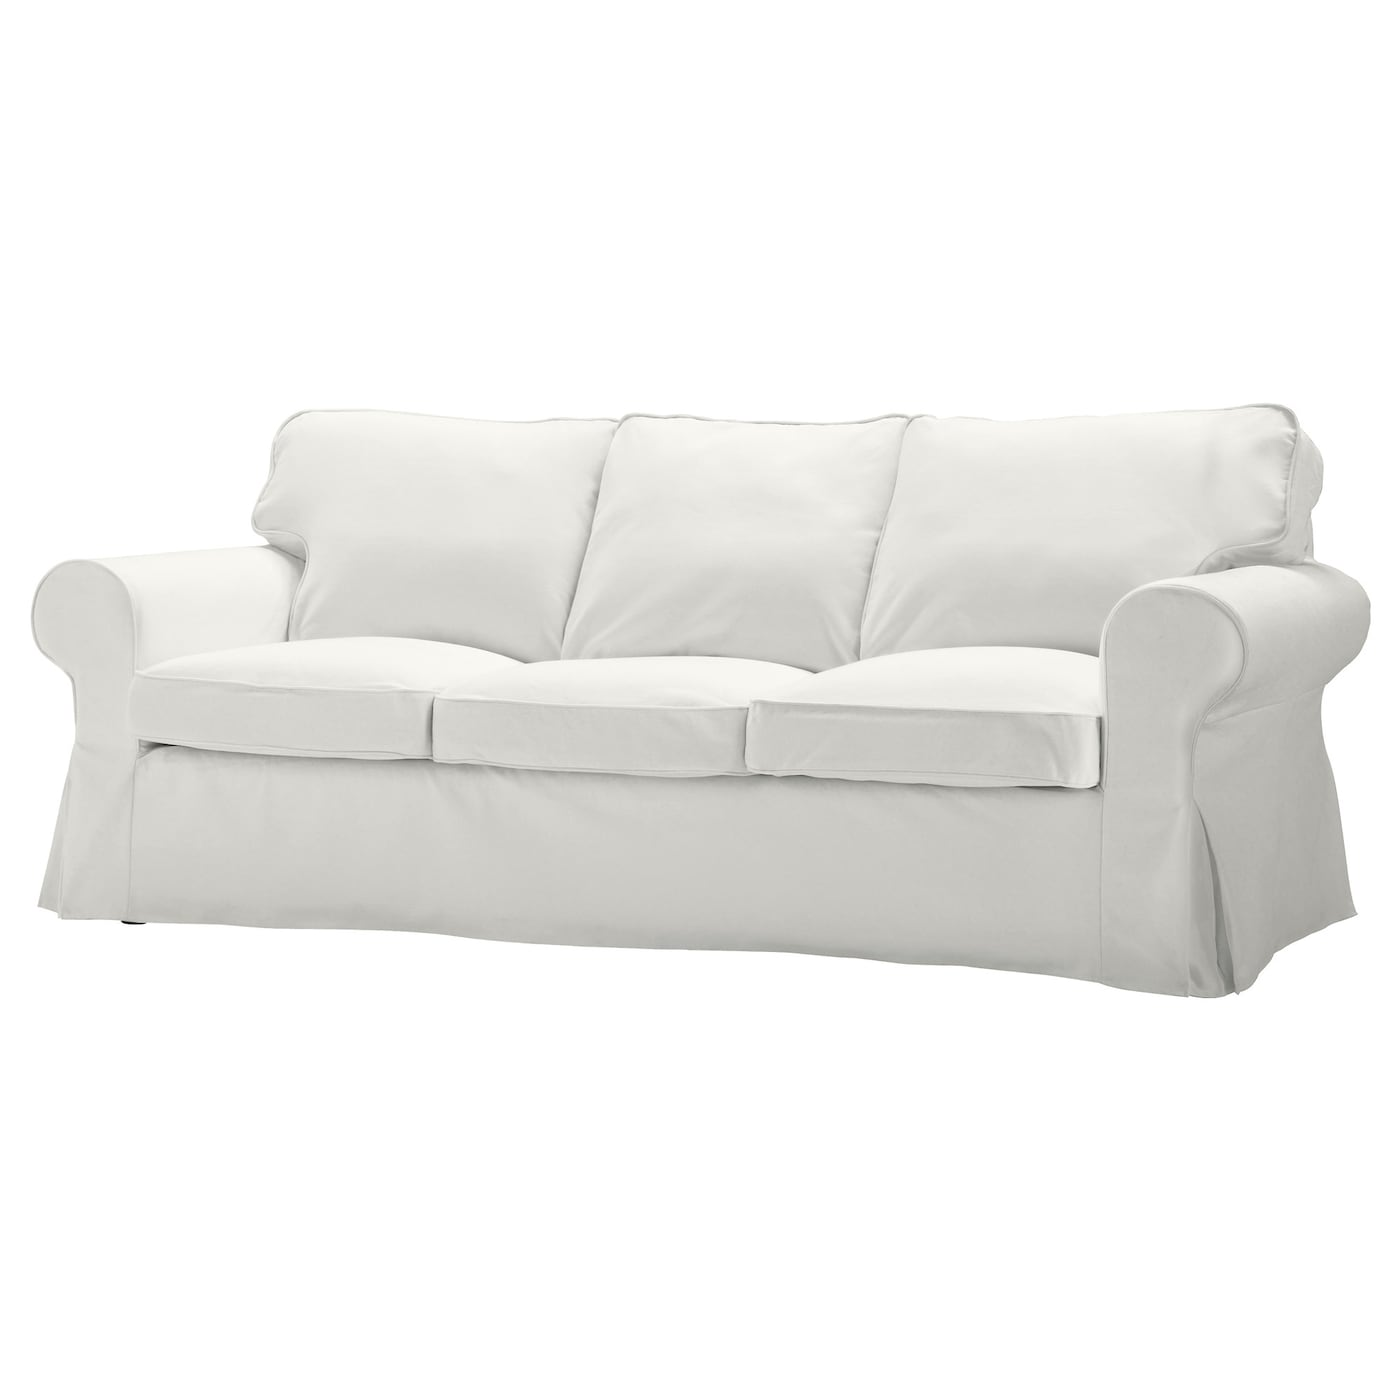 ektorp cover three seat sofa blekinge white ikea. Black Bedroom Furniture Sets. Home Design Ideas